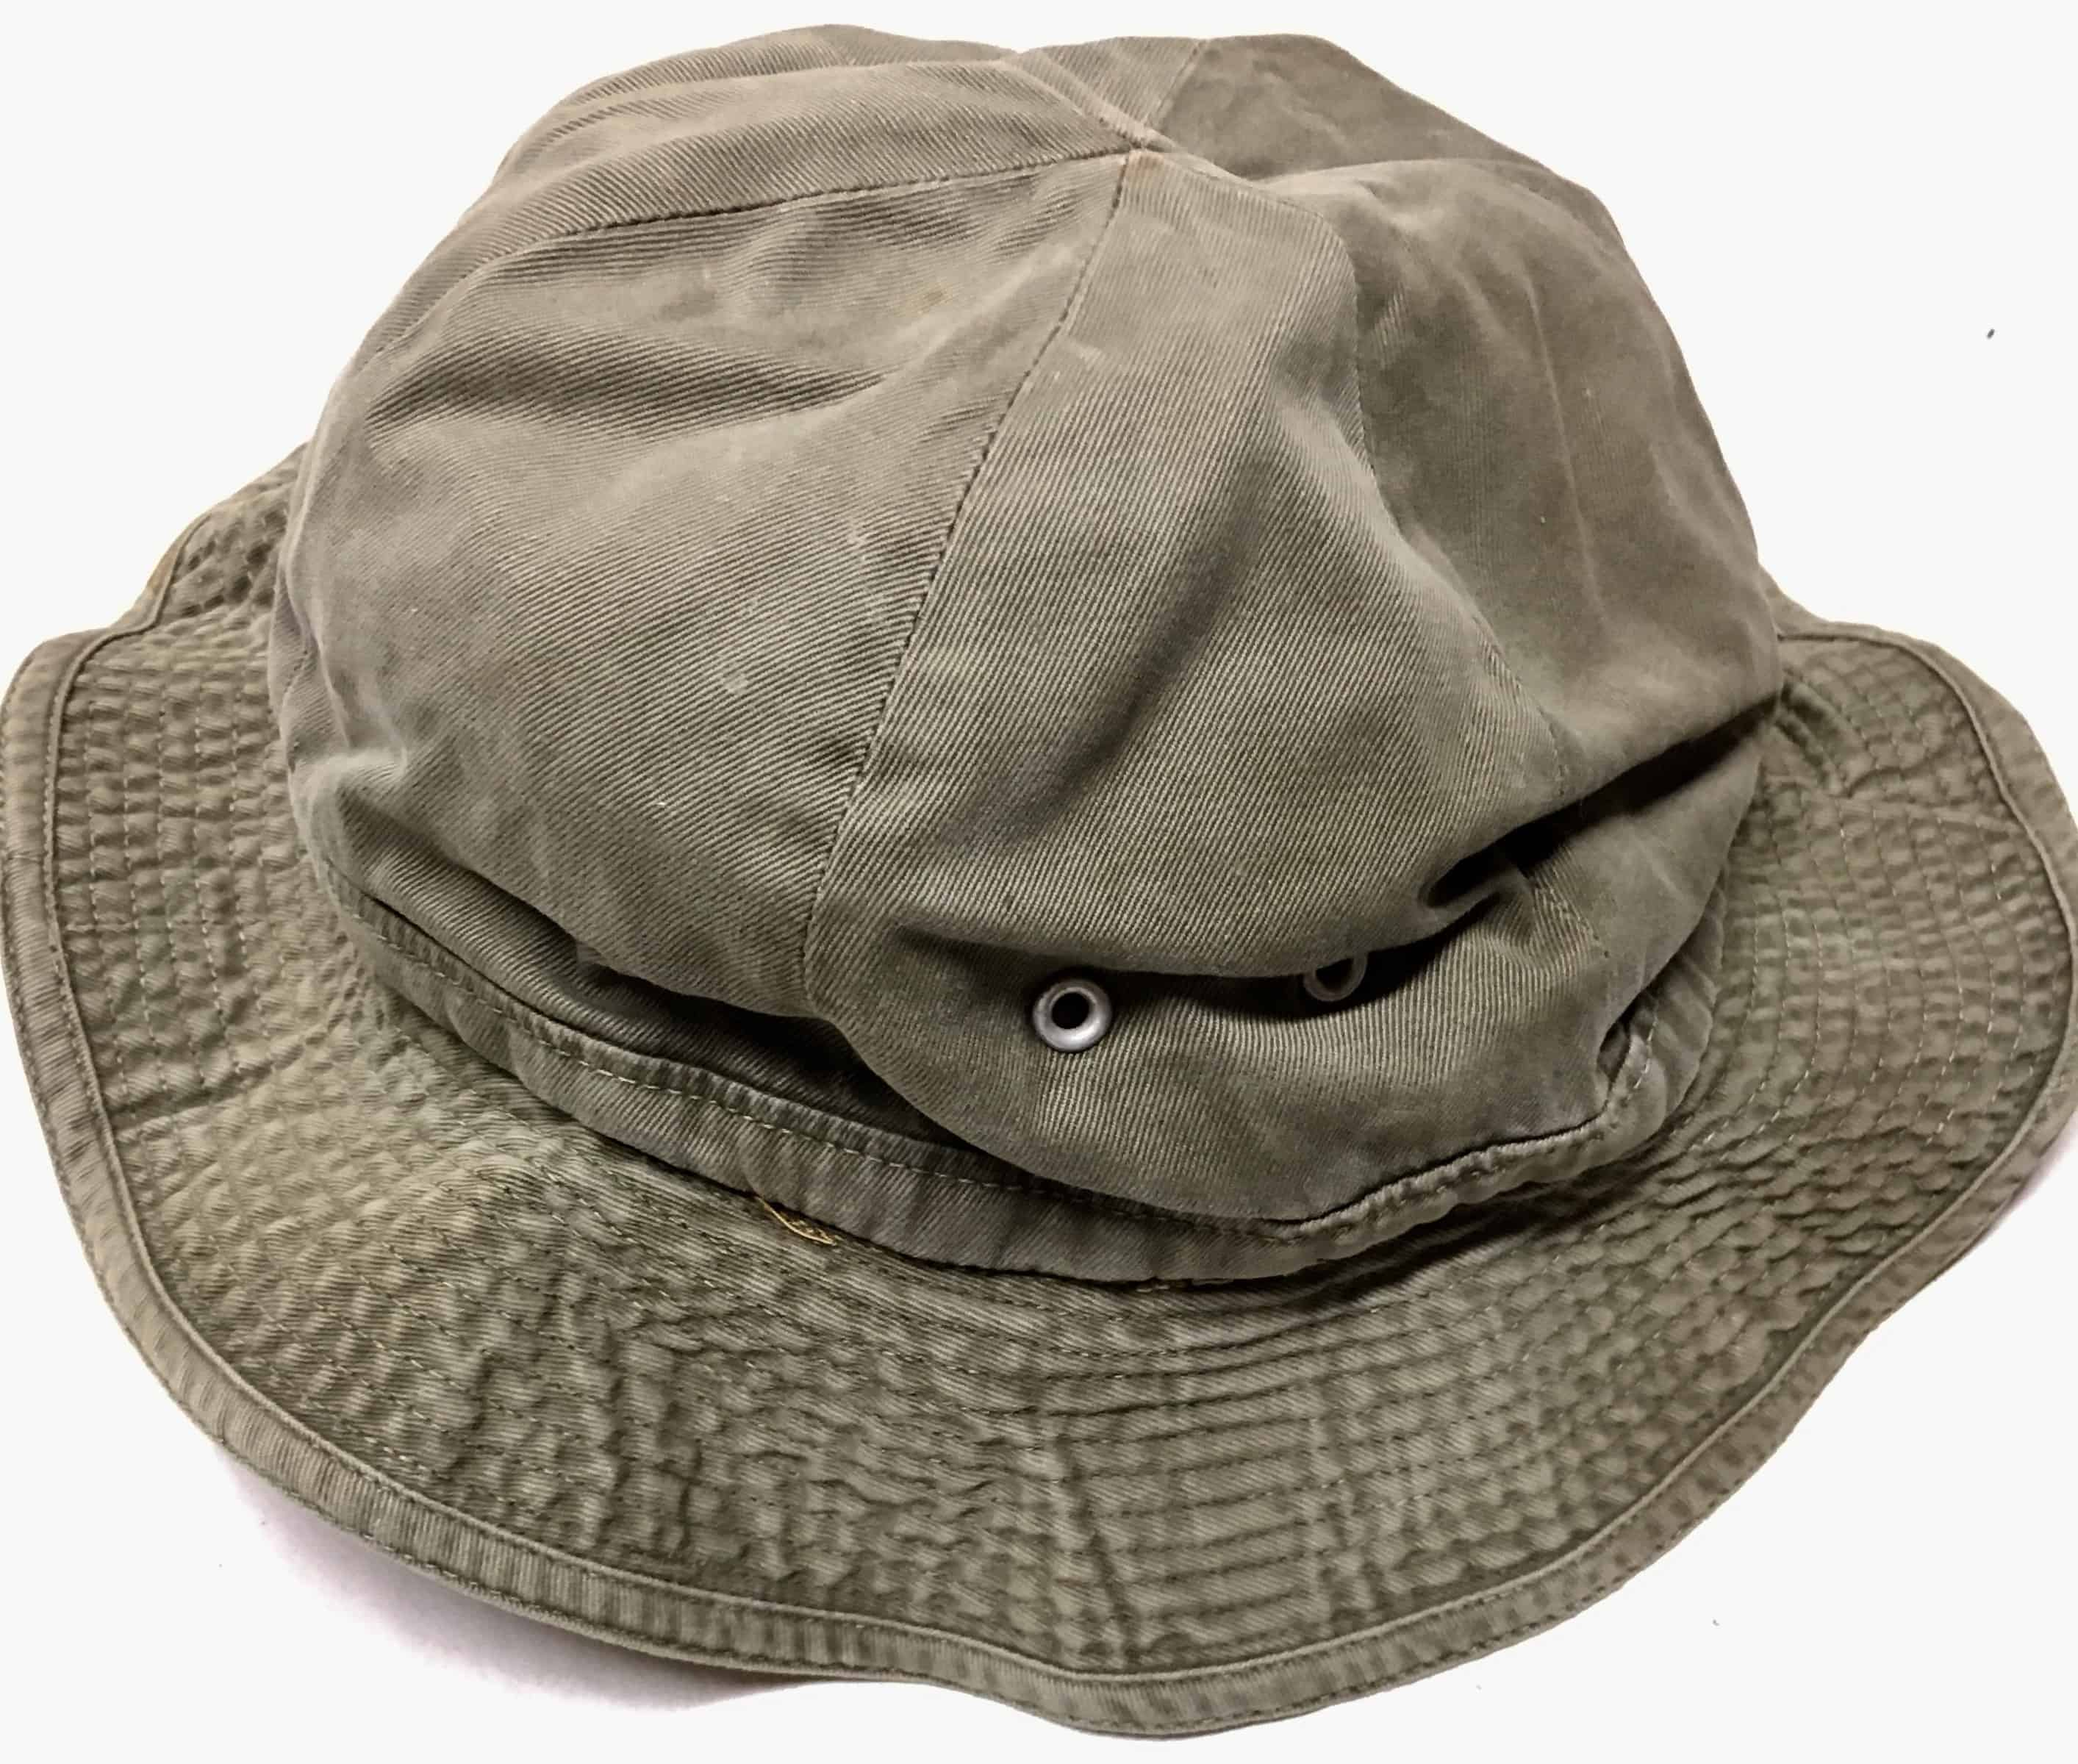 47938a77a4e North Vietnamese Army Viet Cong Boonie Hat Short Brim Olive Green - Enemy  Militaria